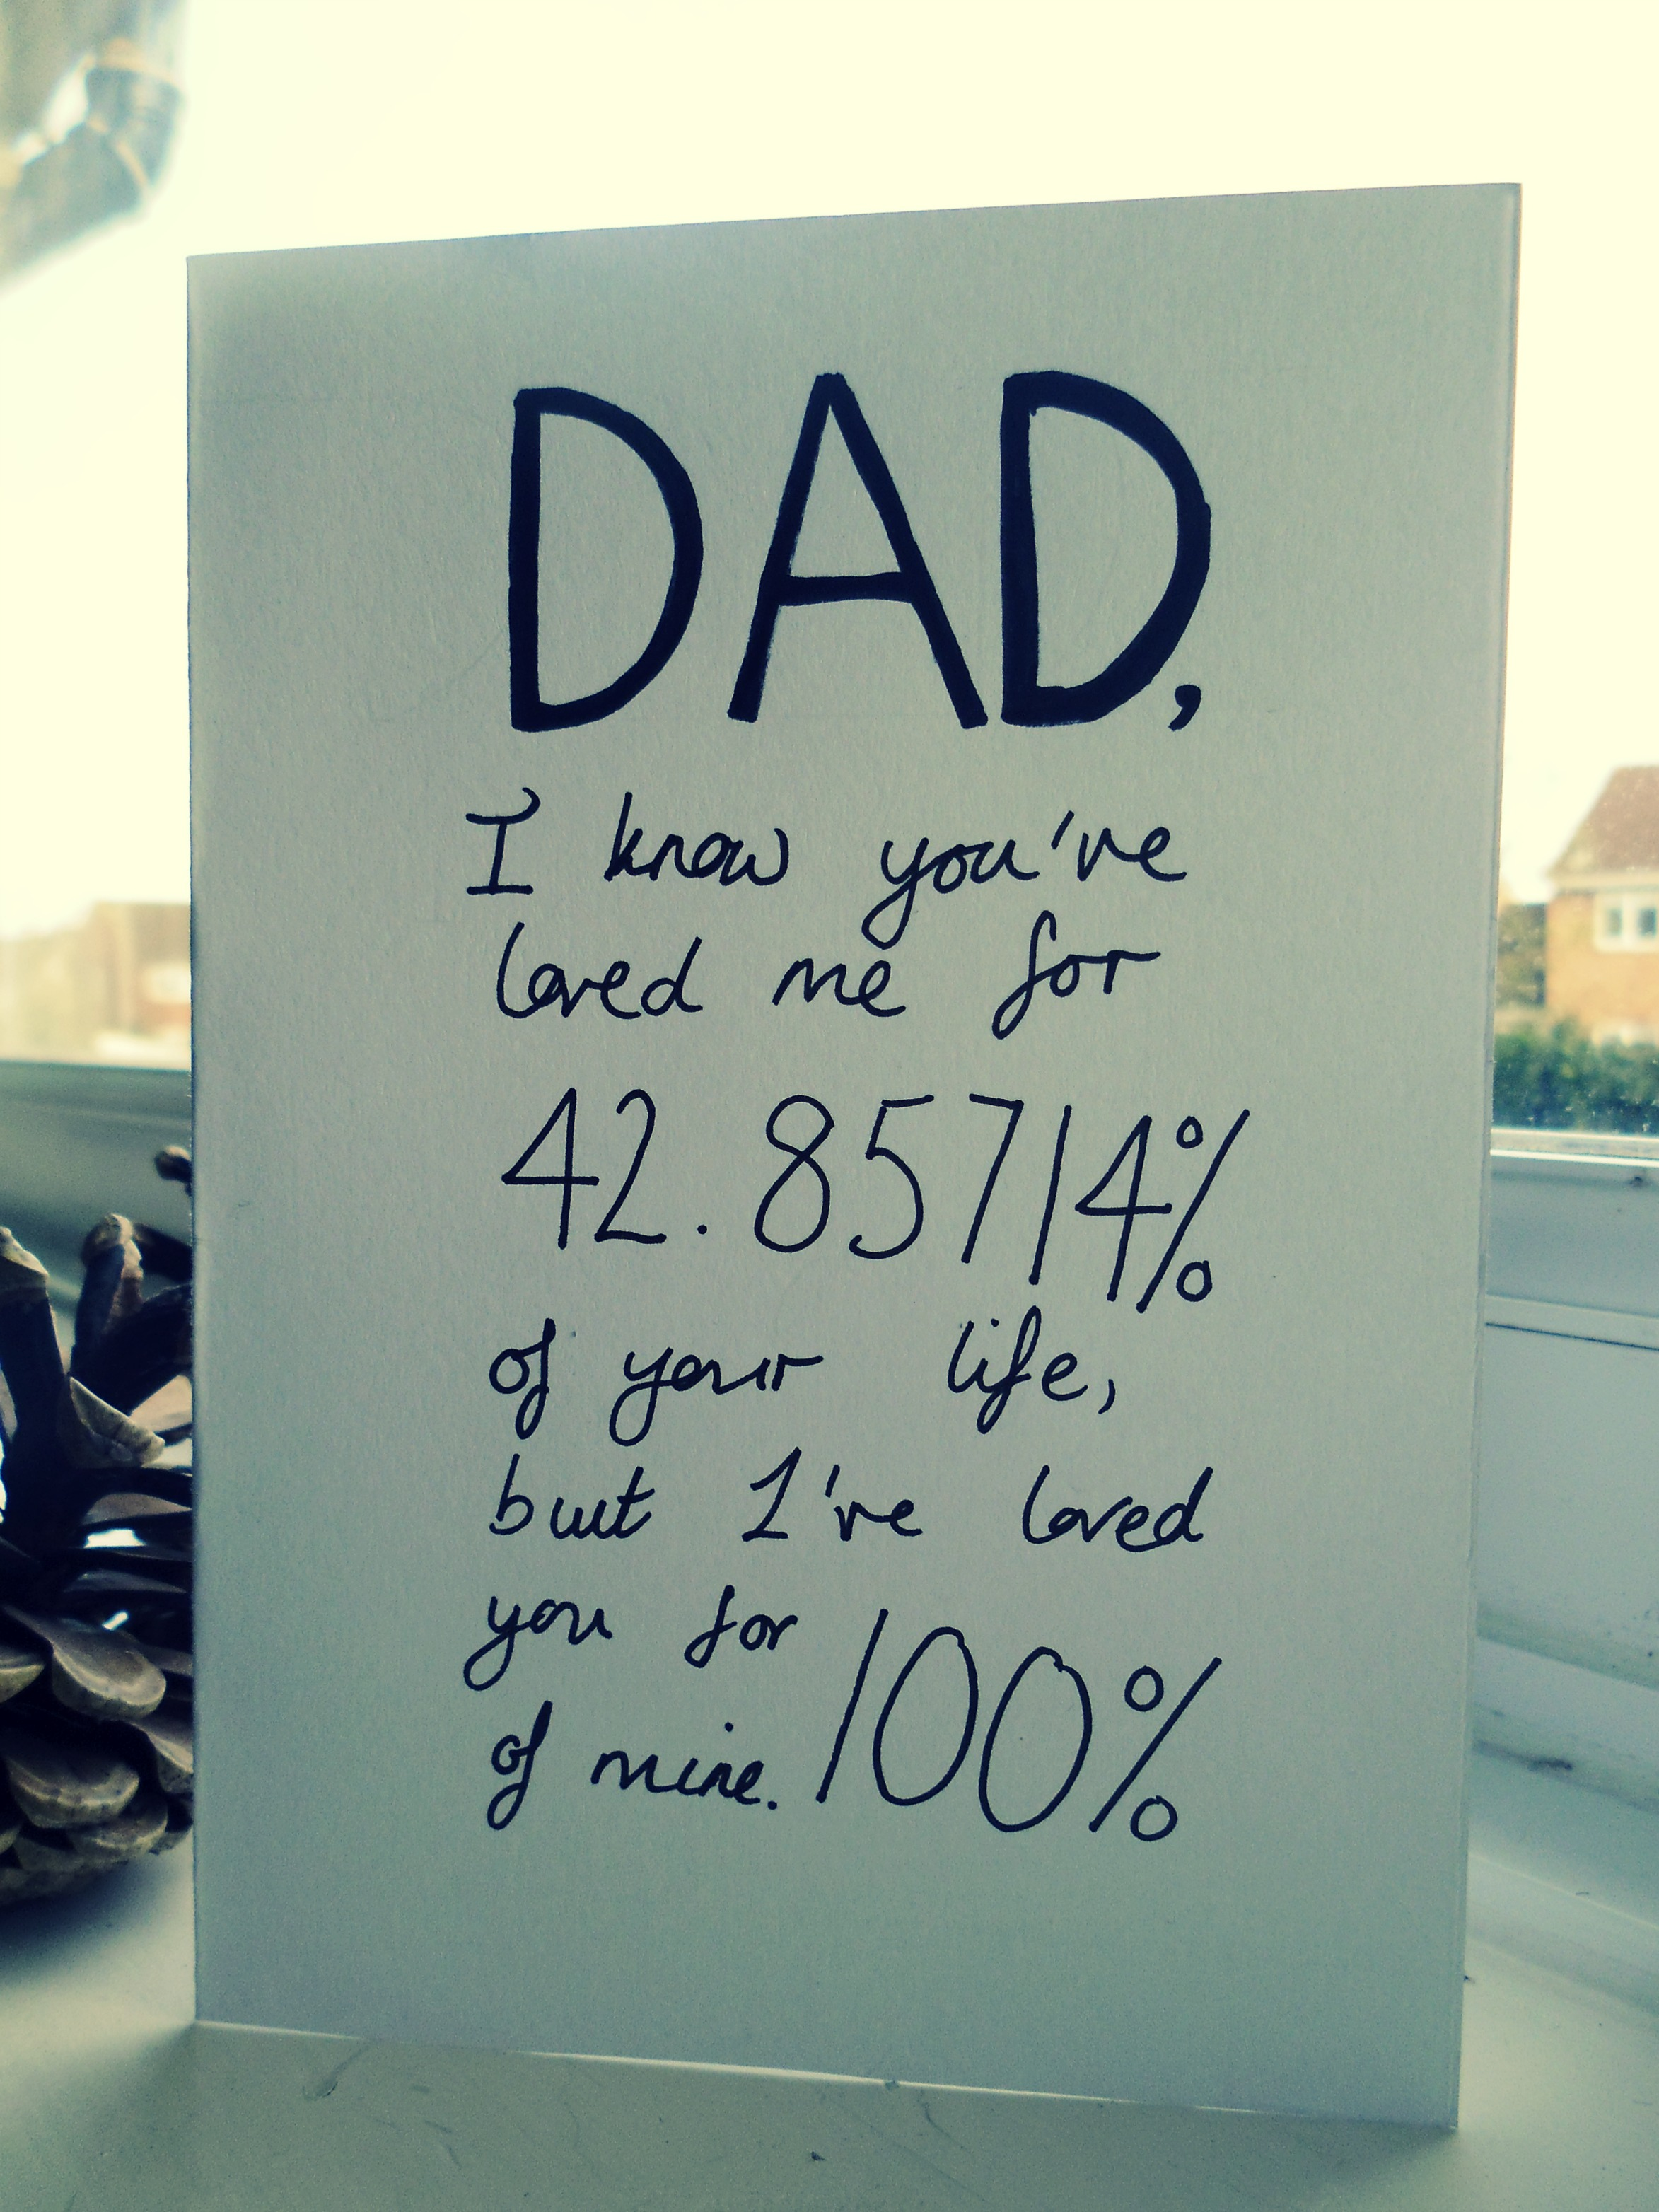 Clever Birthday Card For DAD Stating The Percentage We've